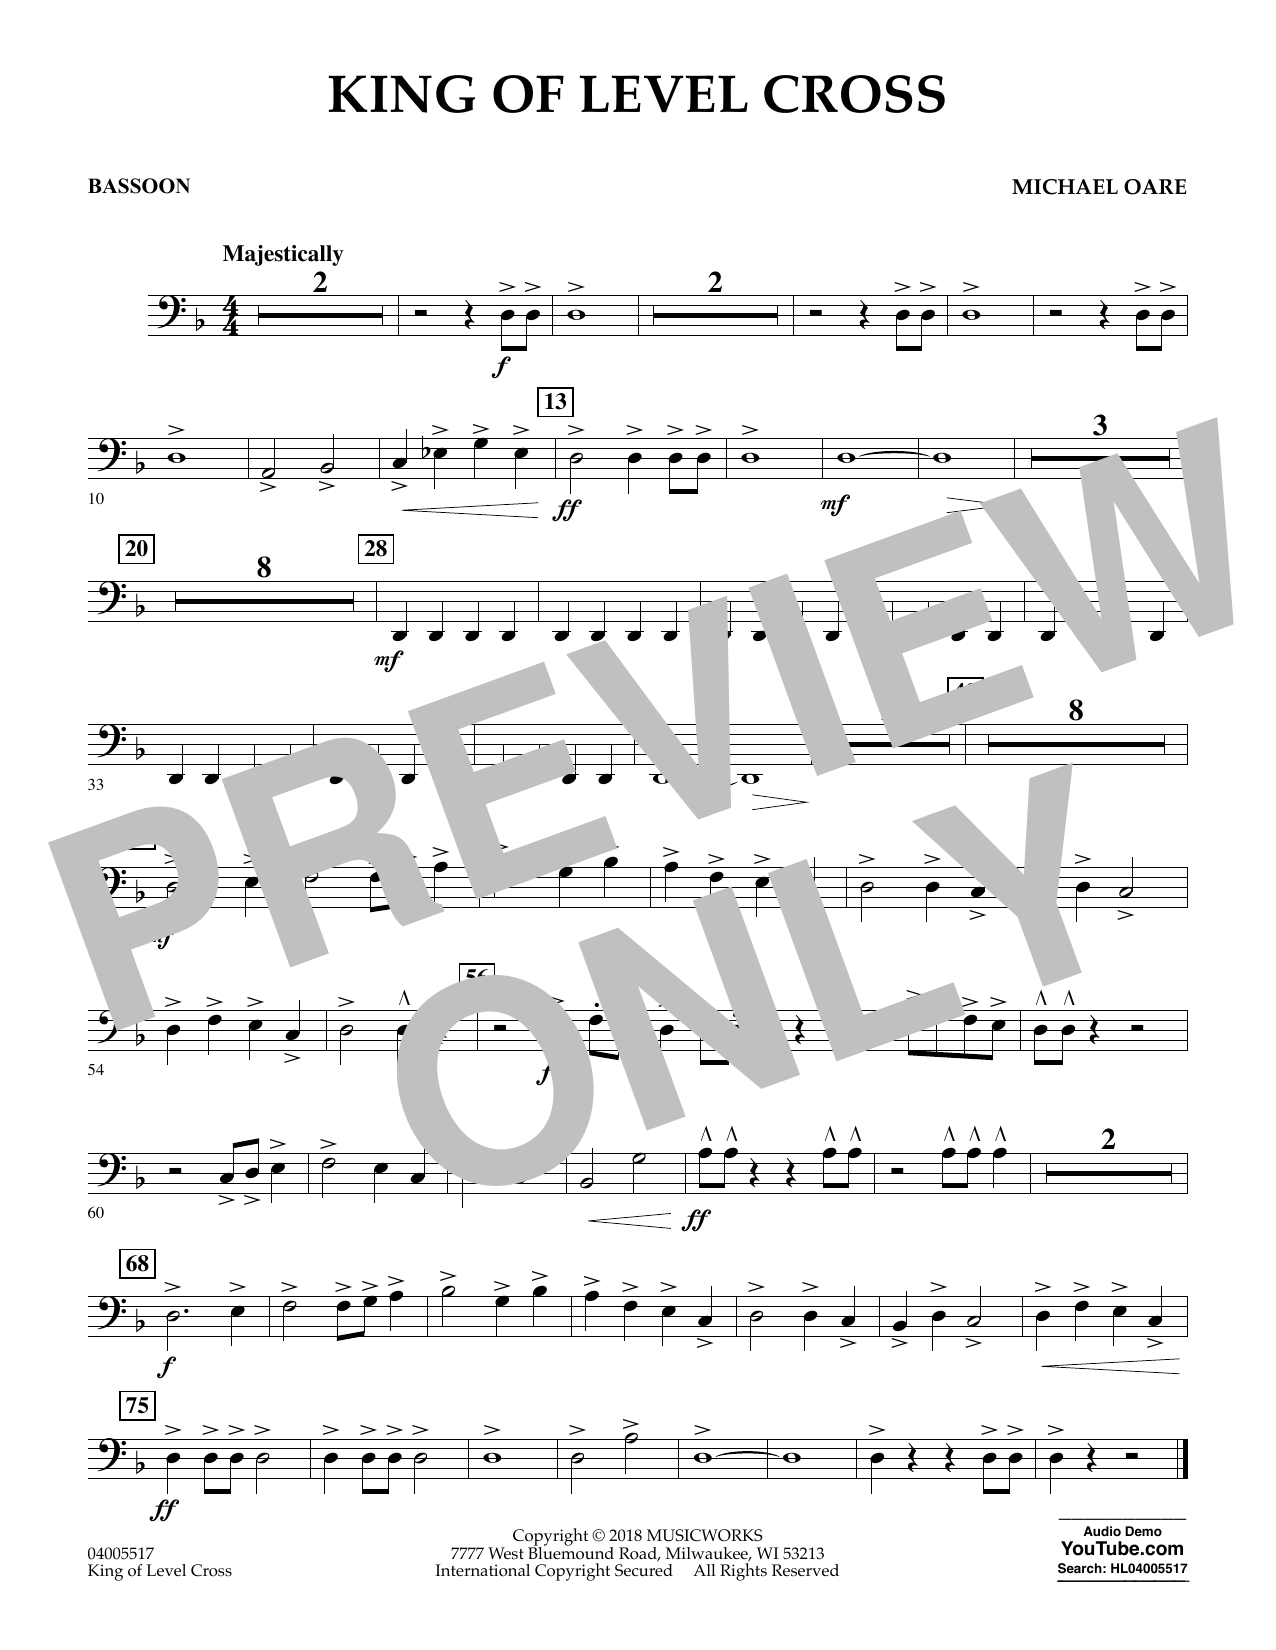 Michael Oare King of Level Cross - Bassoon sheet music notes and chords. Download Printable PDF.